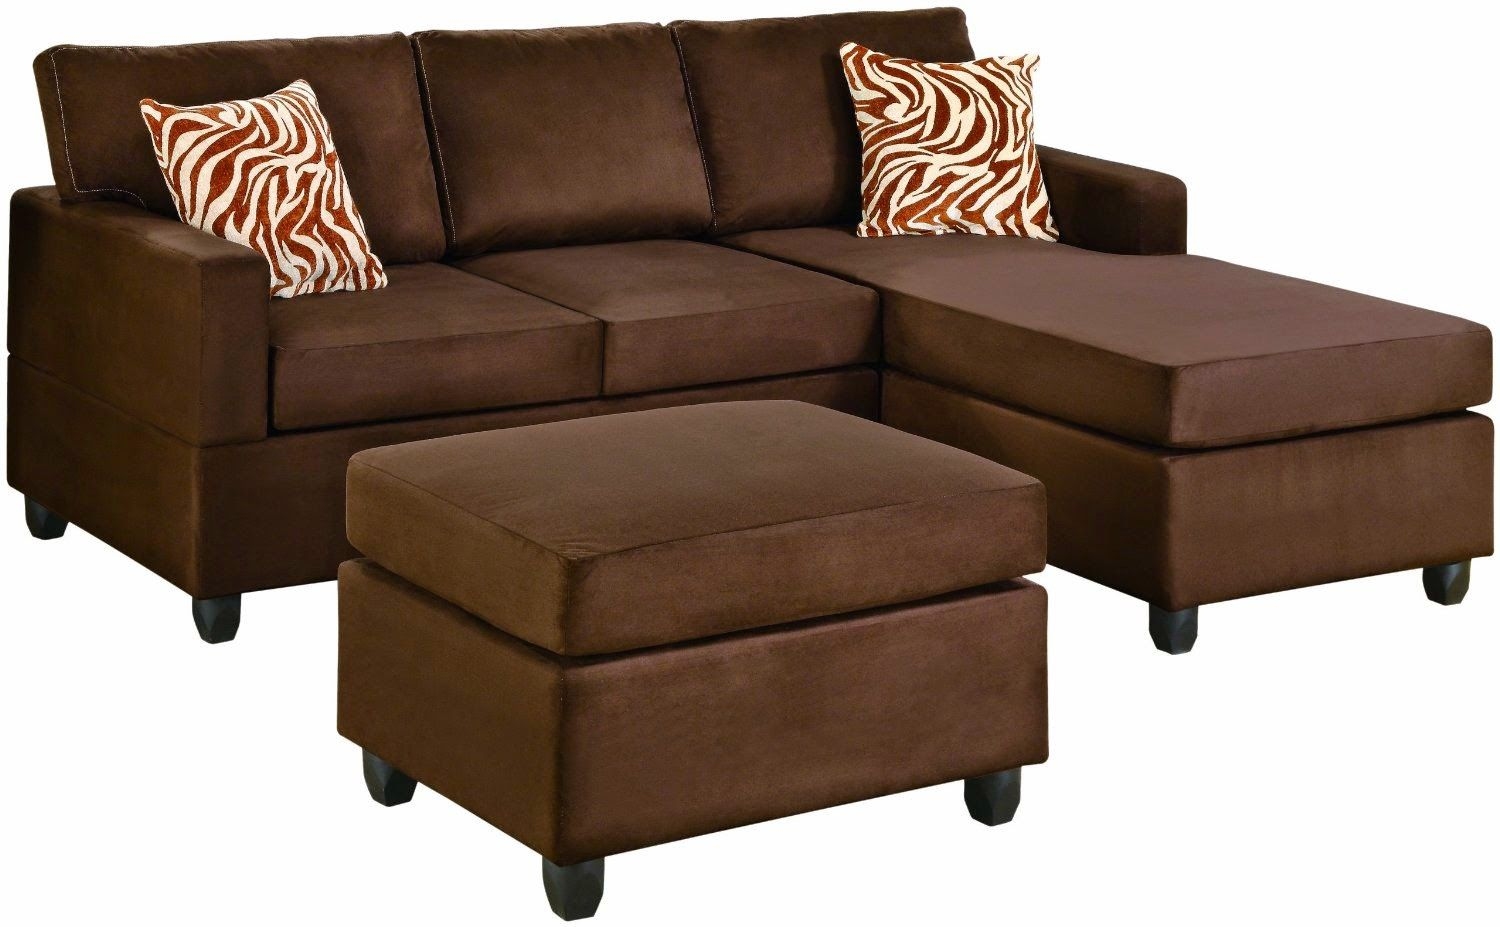 cool Small Corner Sectional Sofa  Best Small Corner Sectional Sofa 96 For Your Sofas and  sc 1 st  Pinterest : brown sofa with chaise - Sectionals, Sofas & Couches